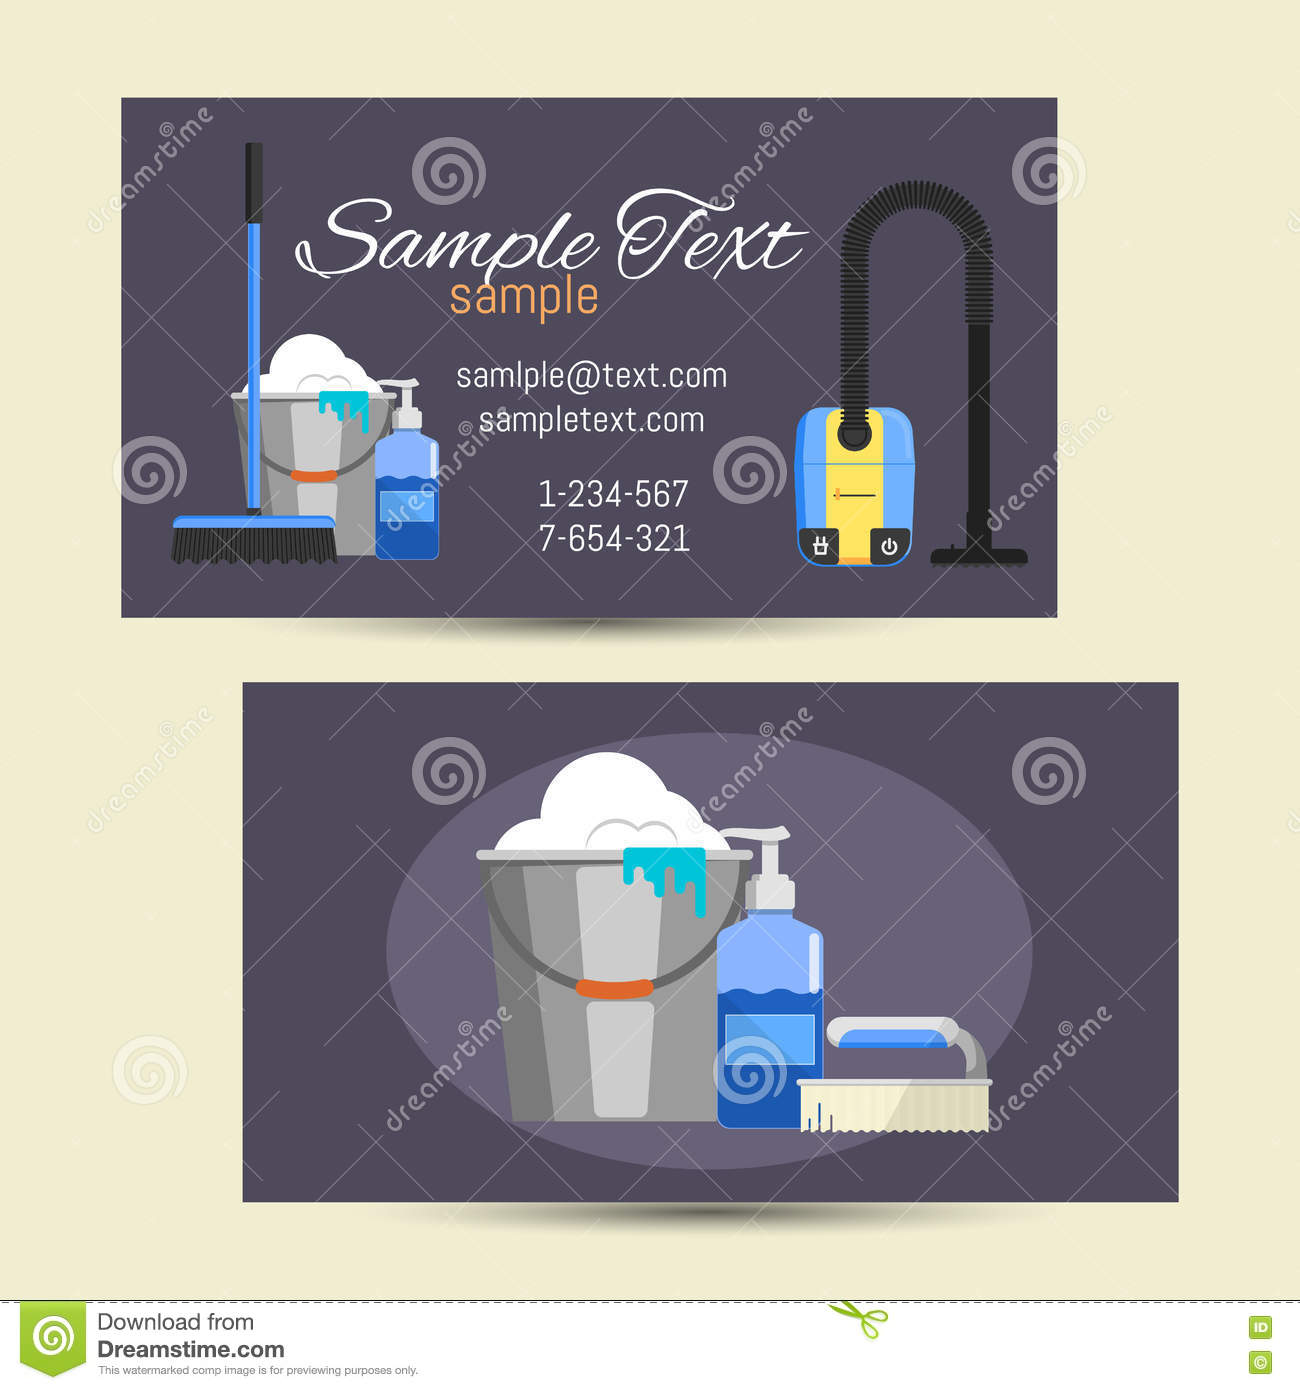 Cleaning services business cards cleaning services business cards cleaning services lady magicingreecefo Choice Image